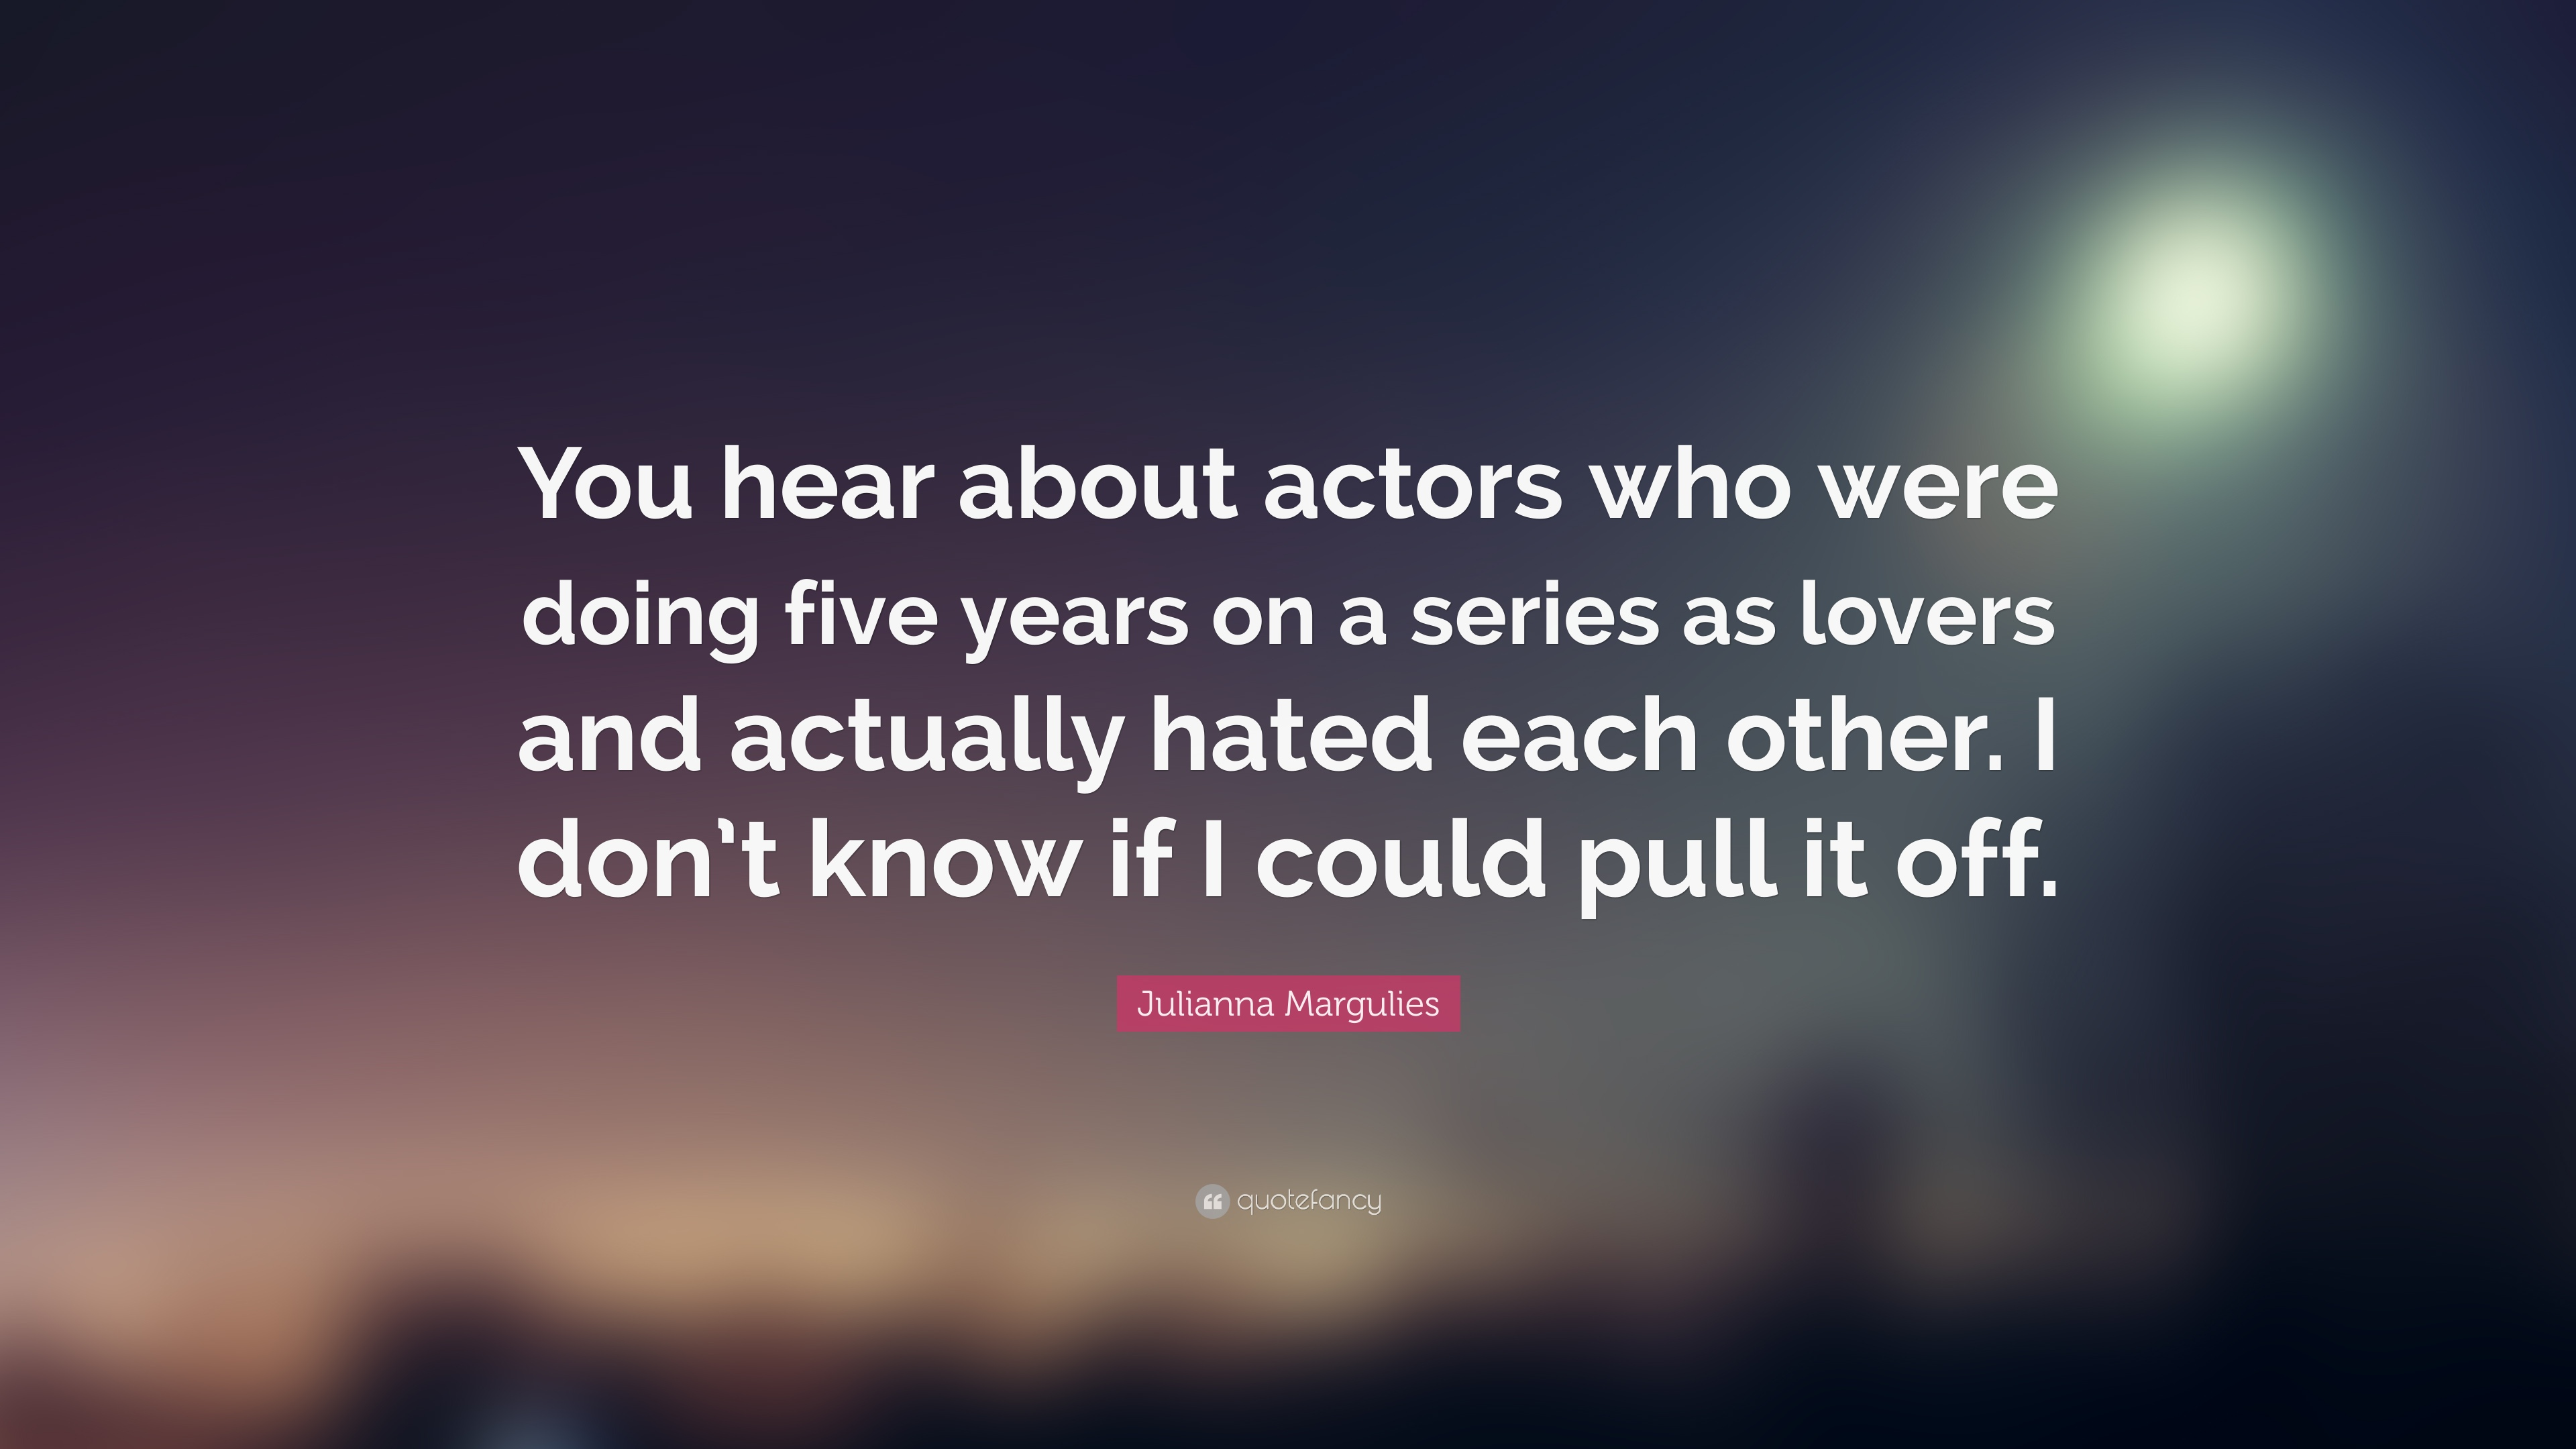 """Julianna Margulies Quotes 50 Wallpapers: Julianna Margulies Quote: """"You Hear About Actors Who Were"""